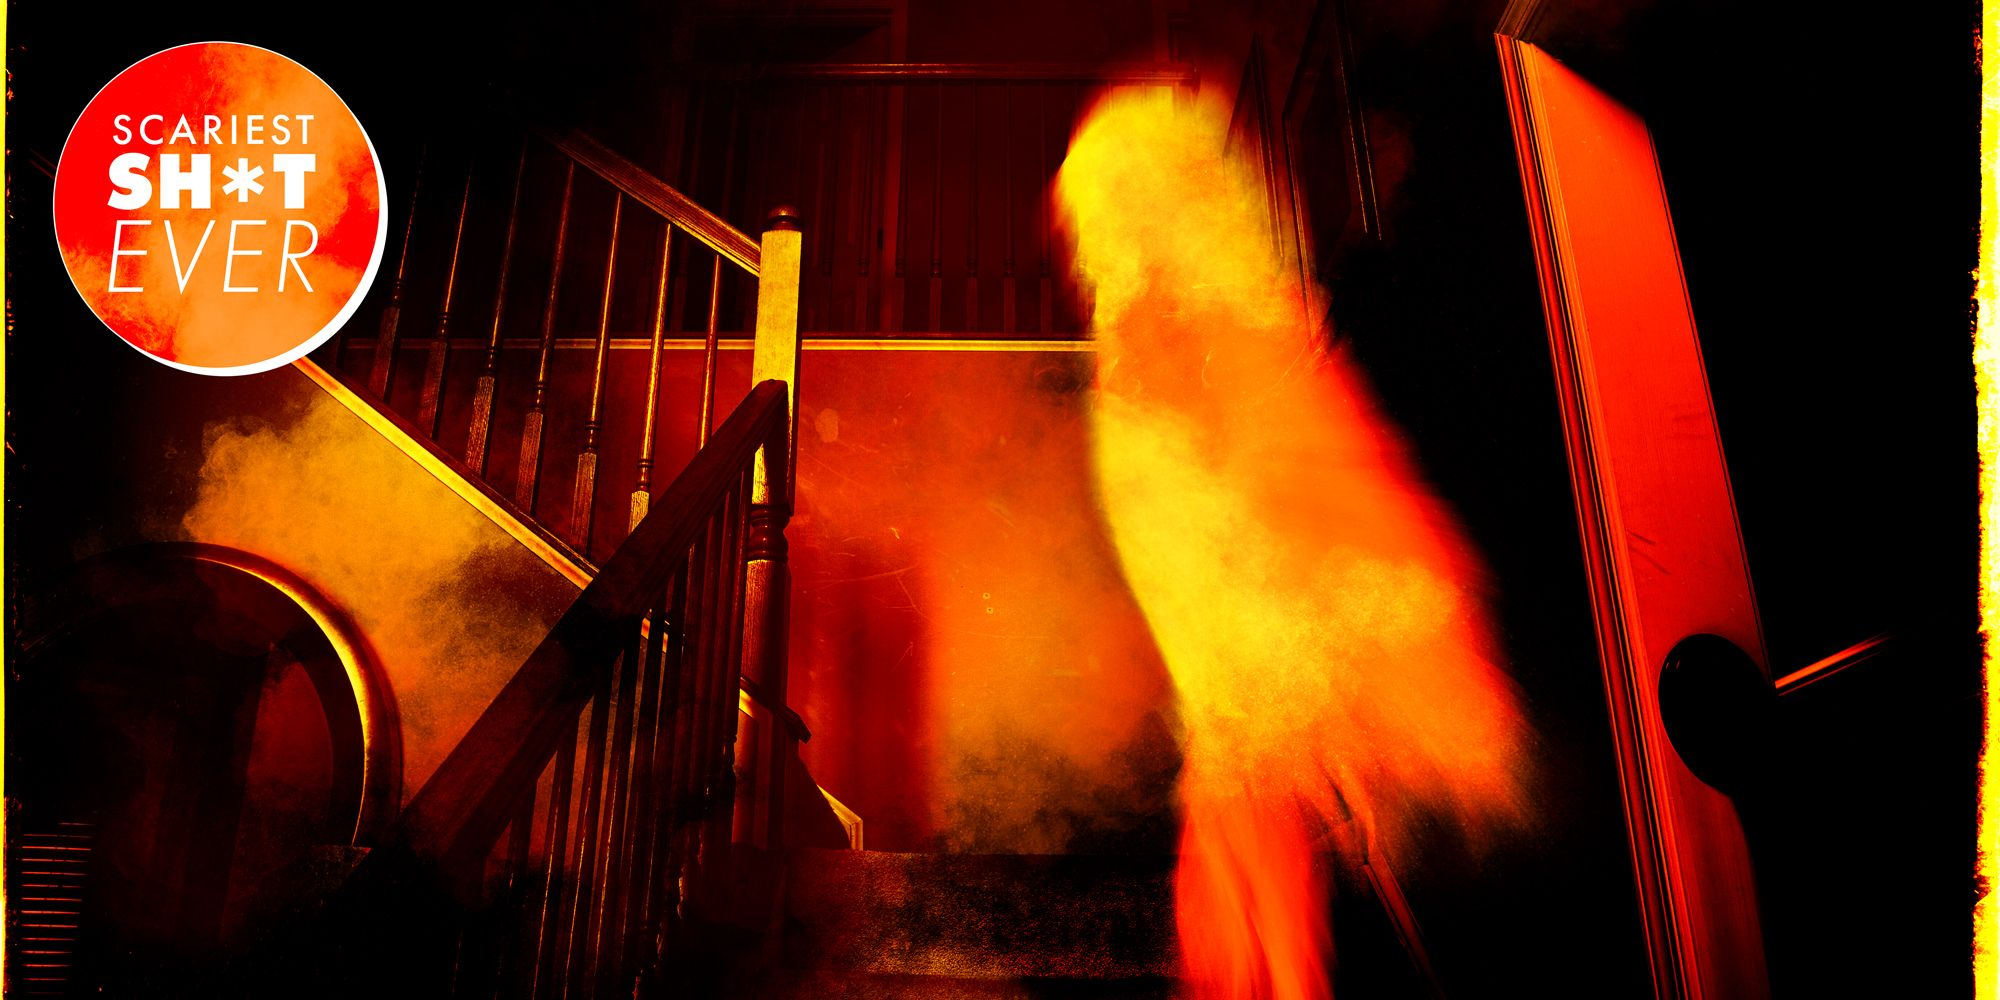 10 Terrifying Real Ghost Stories to Tell at Your Next Girls' Night